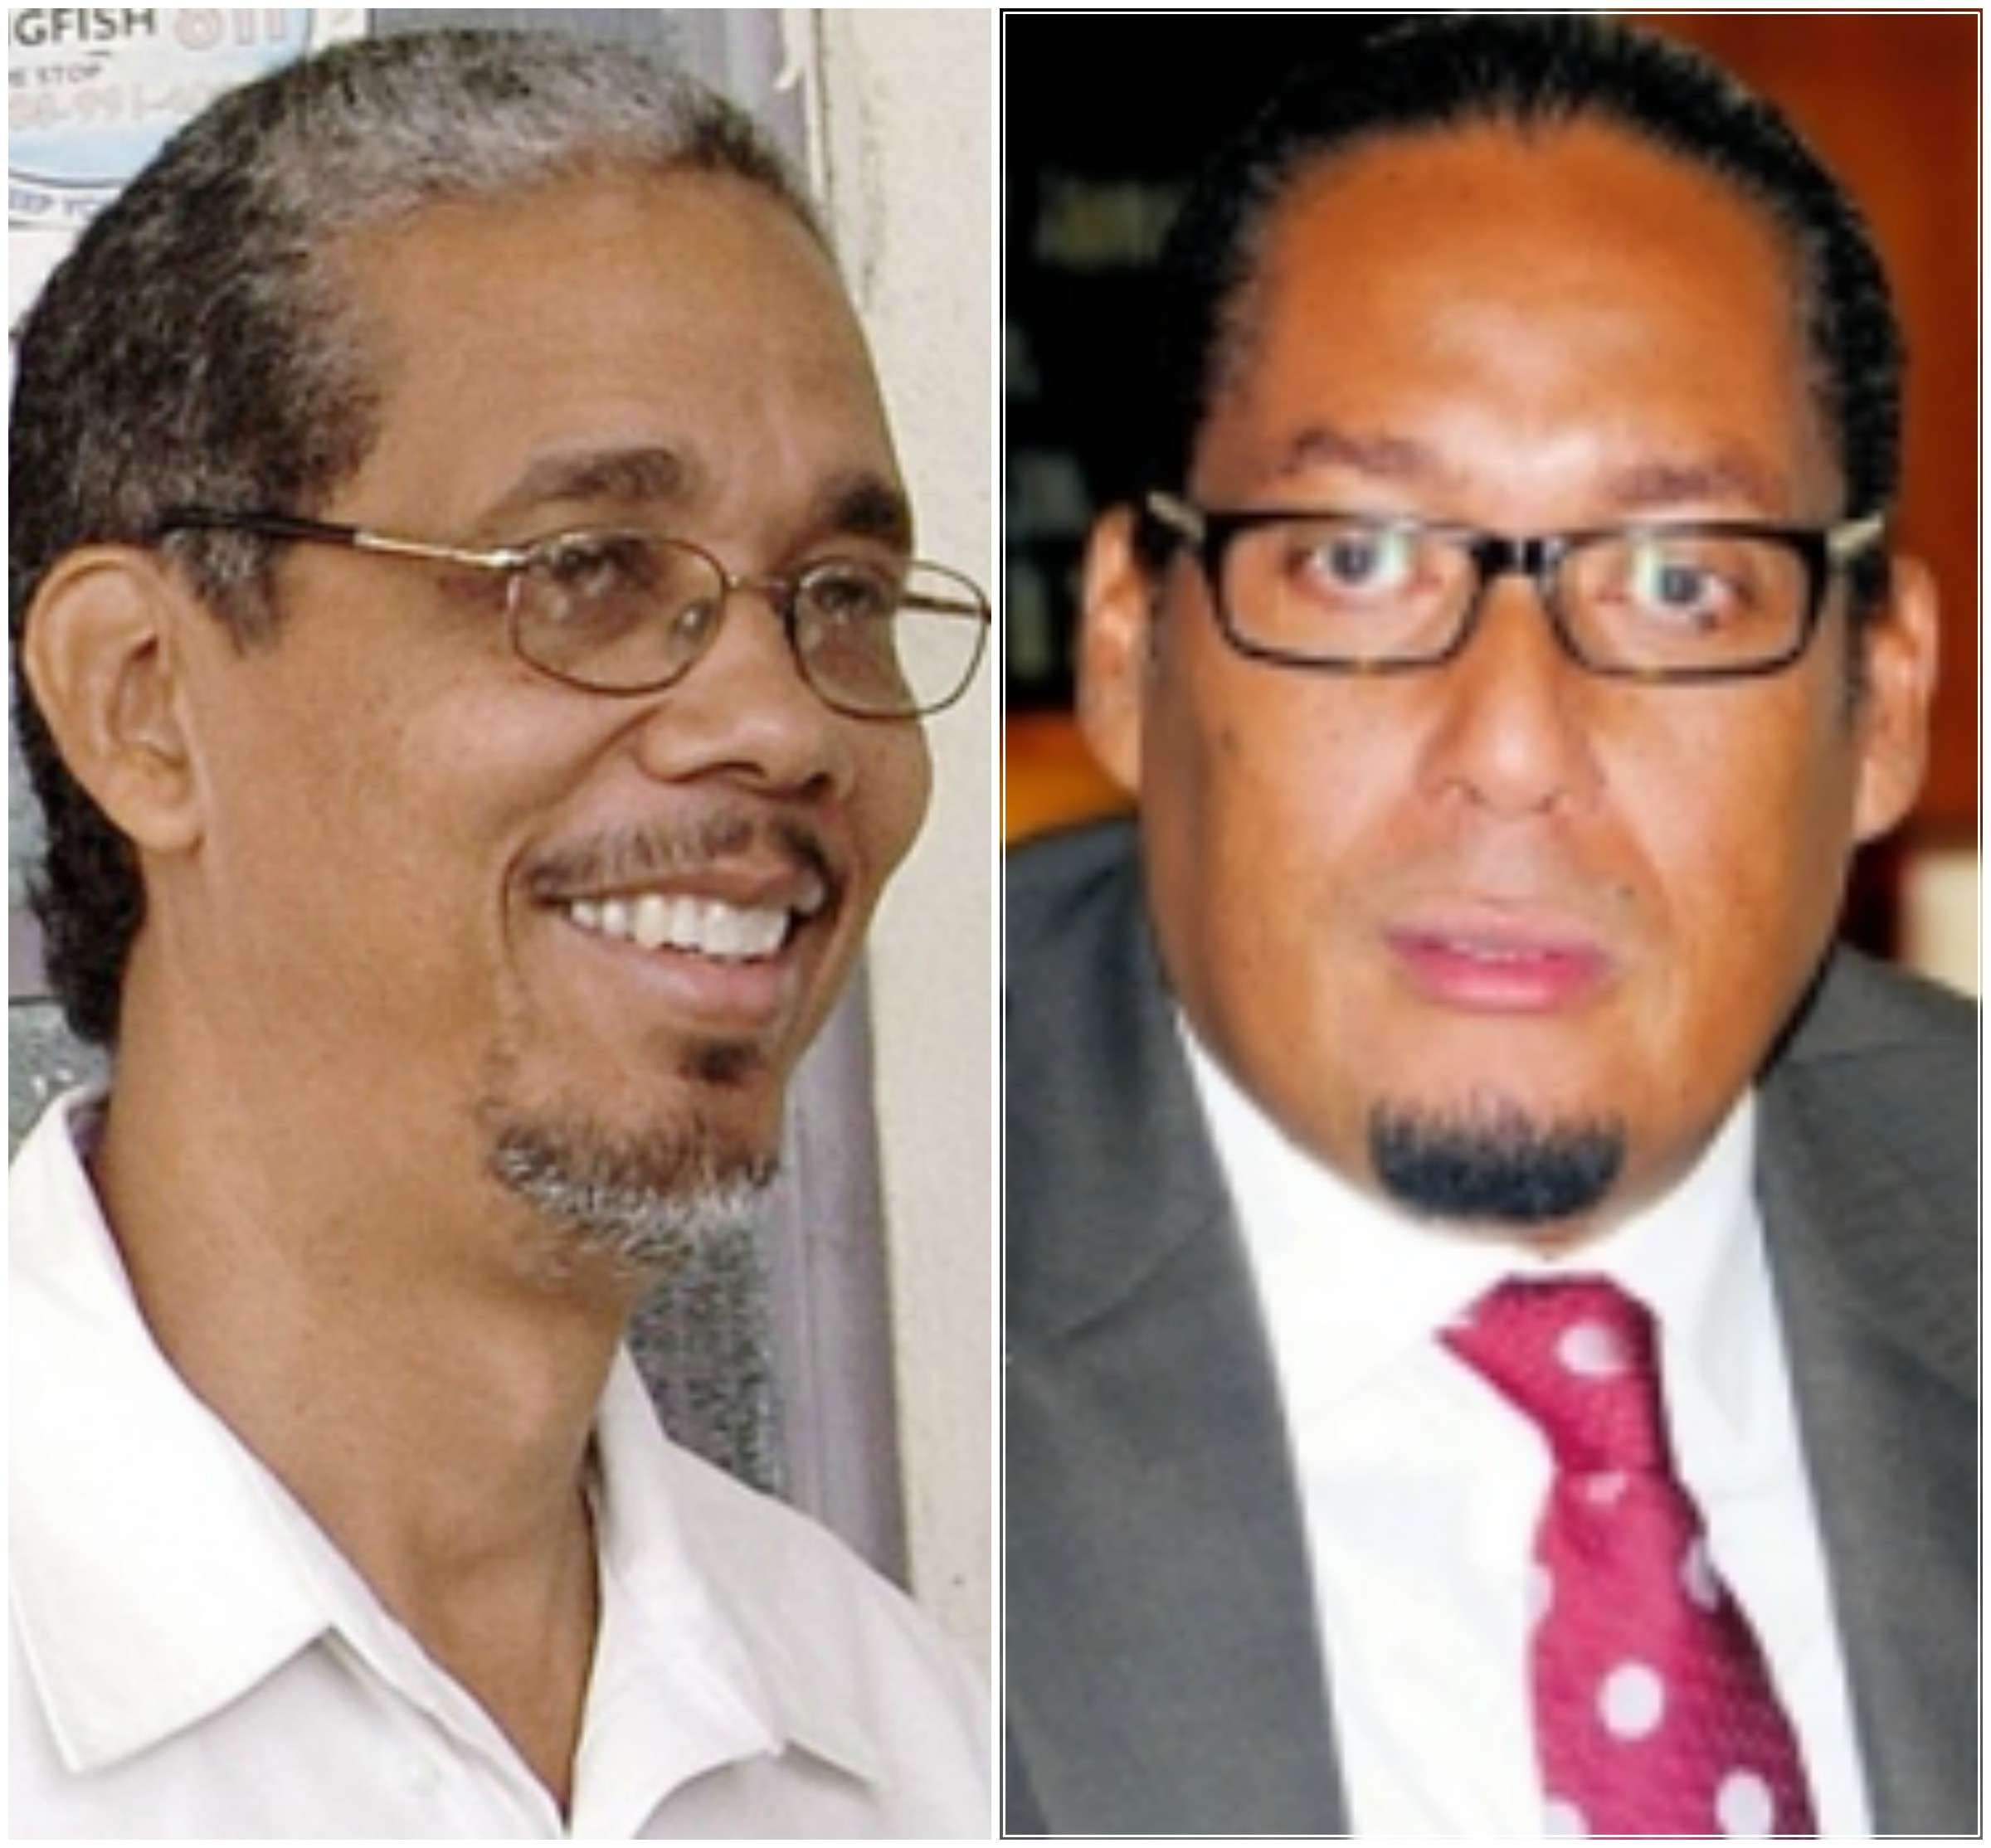 Burke & JP White Differ on Facts of Resignation